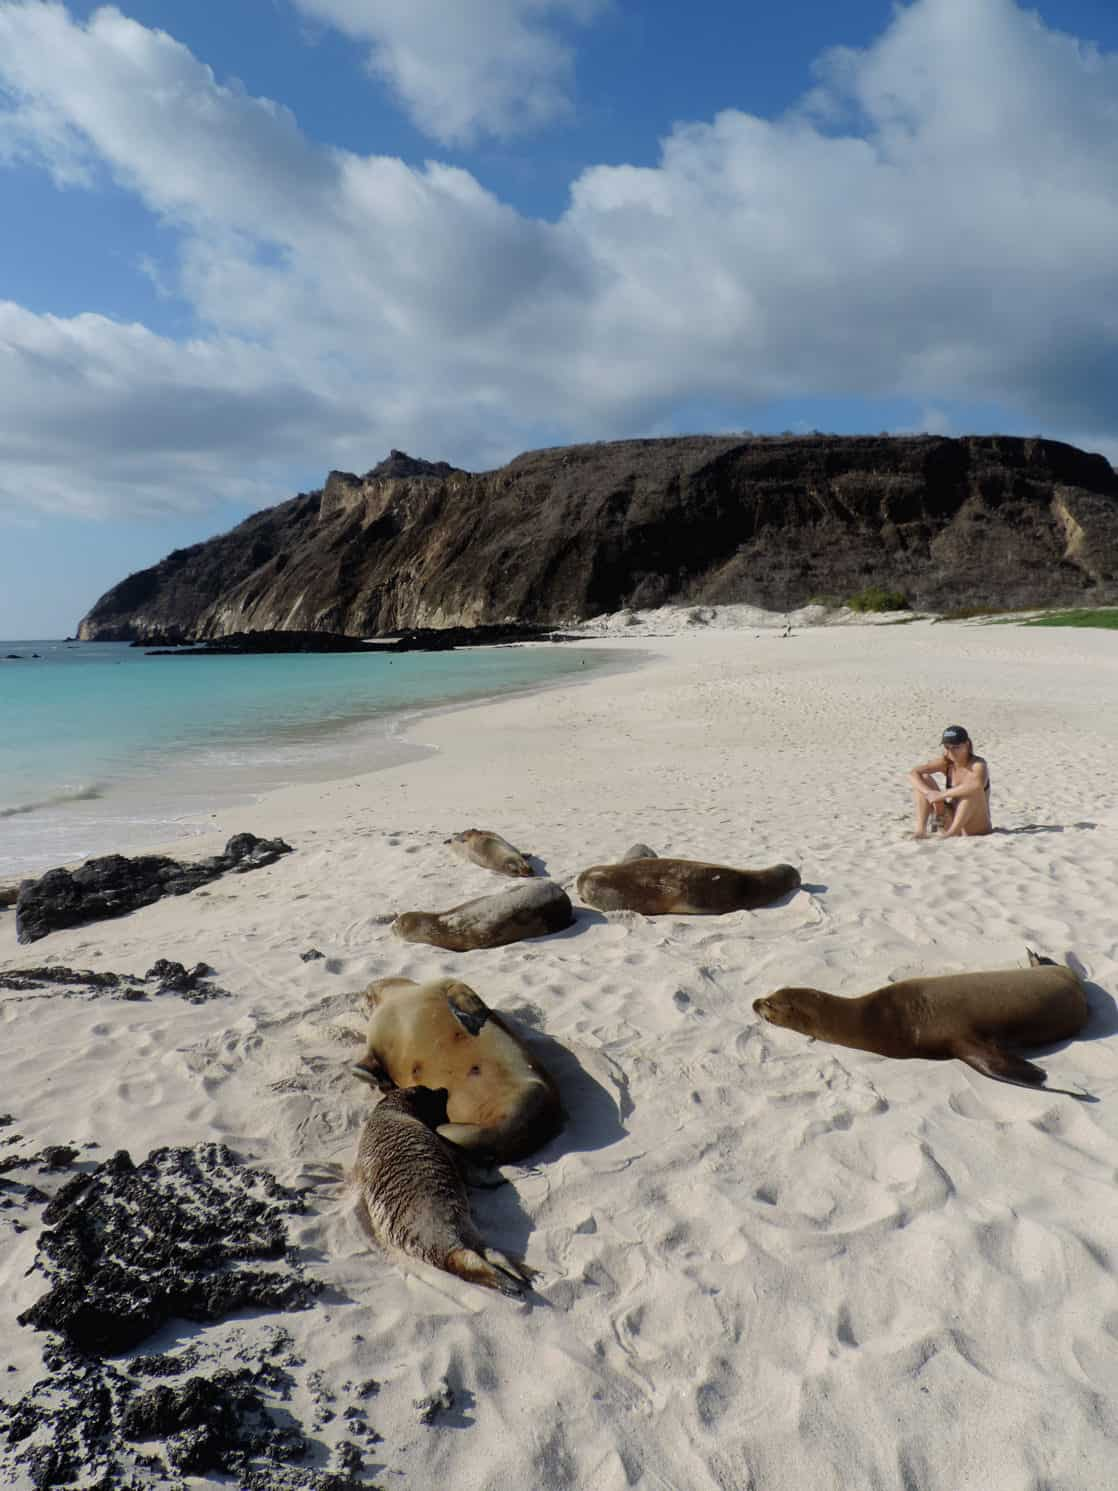 Traveler sitting on a sandy beach with sleeping sea lions splayed out in front of her.